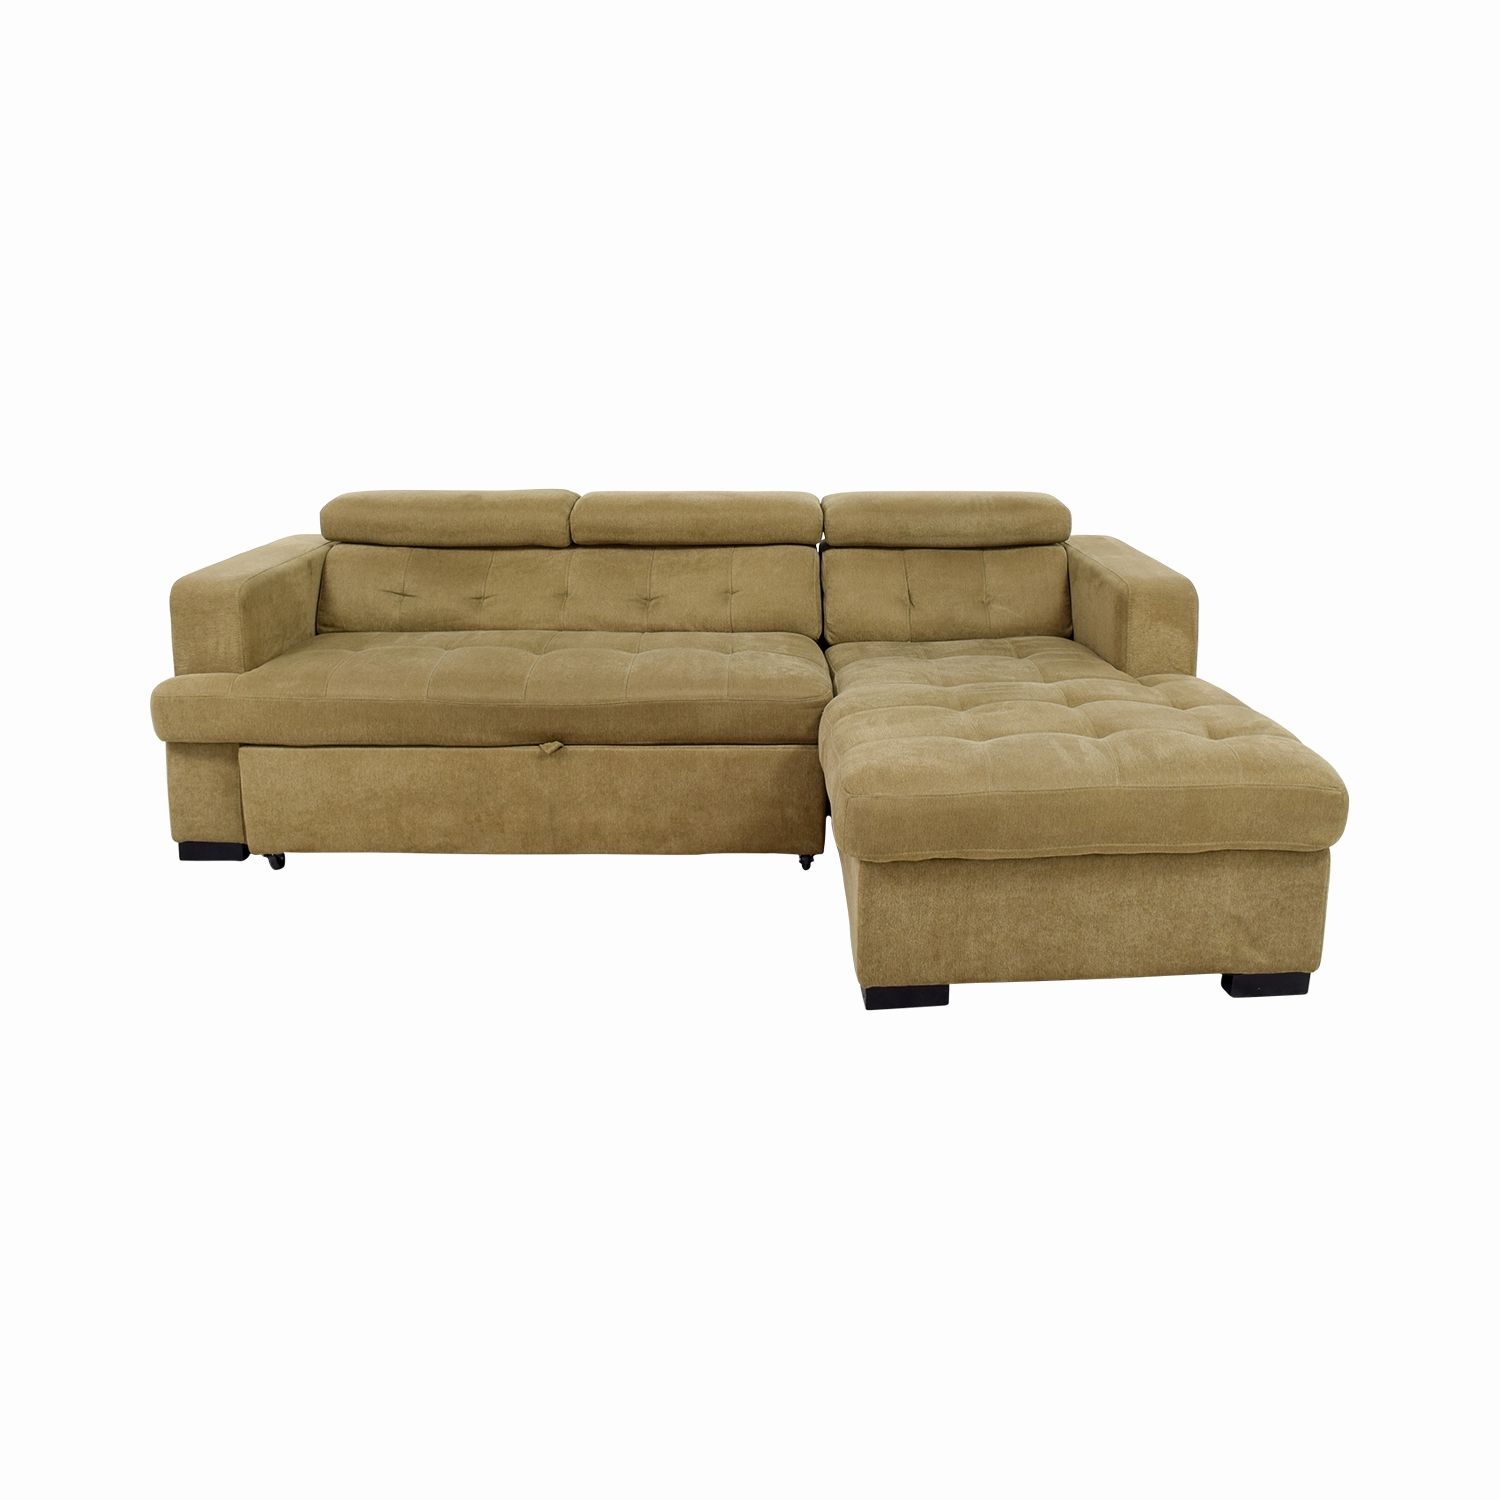 Luxury Bobs Sleeper sofa Pics 52 off